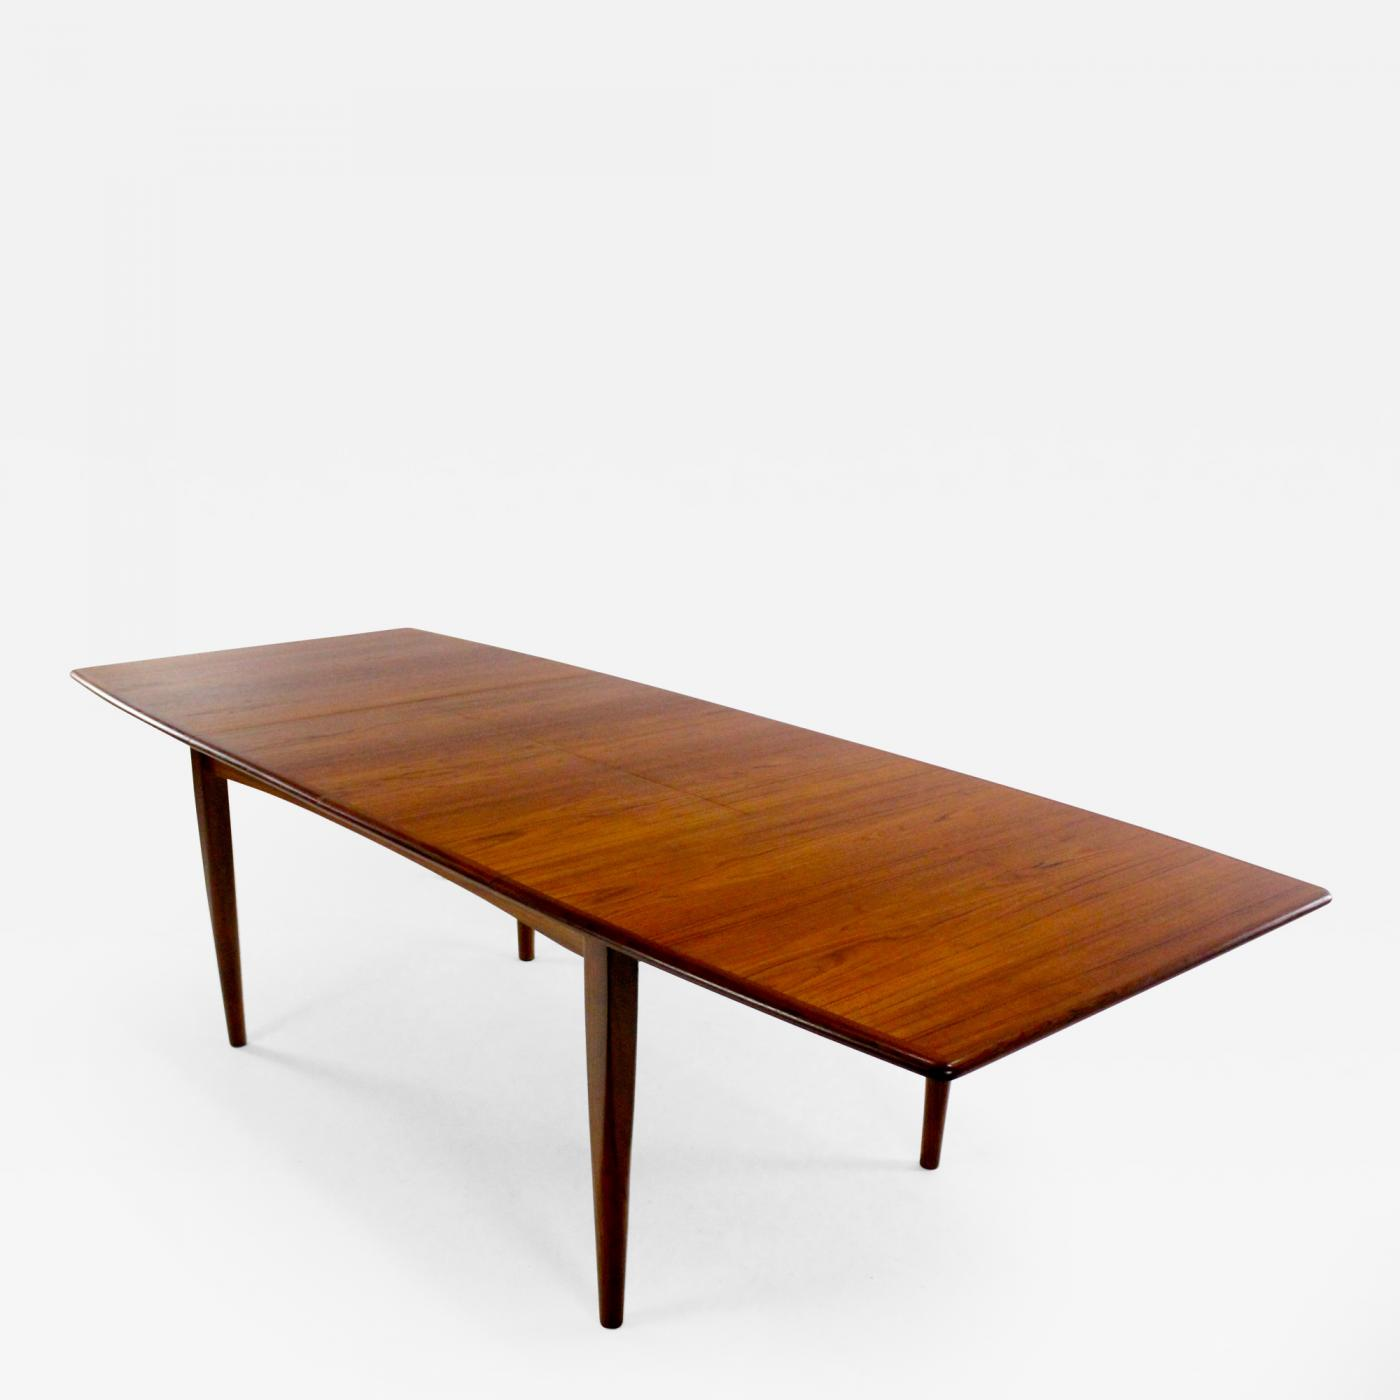 Ib KofodLarsen Danish Modern Butterfly Leaf Teak Dining Table - Teak dining table with leaf